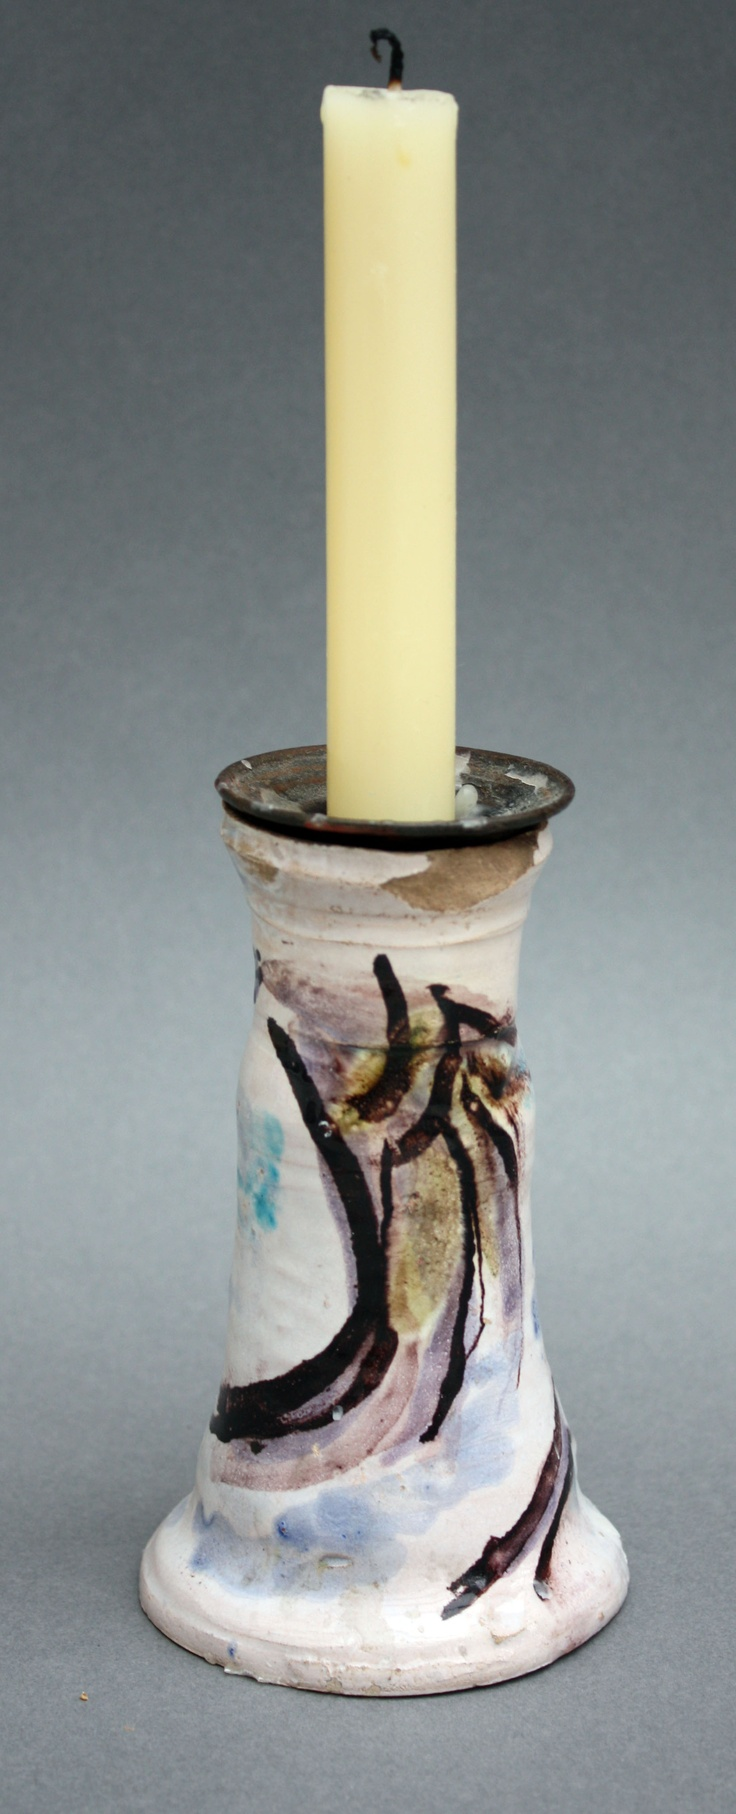 ¤ Candlestick decorated by Duncan Grant